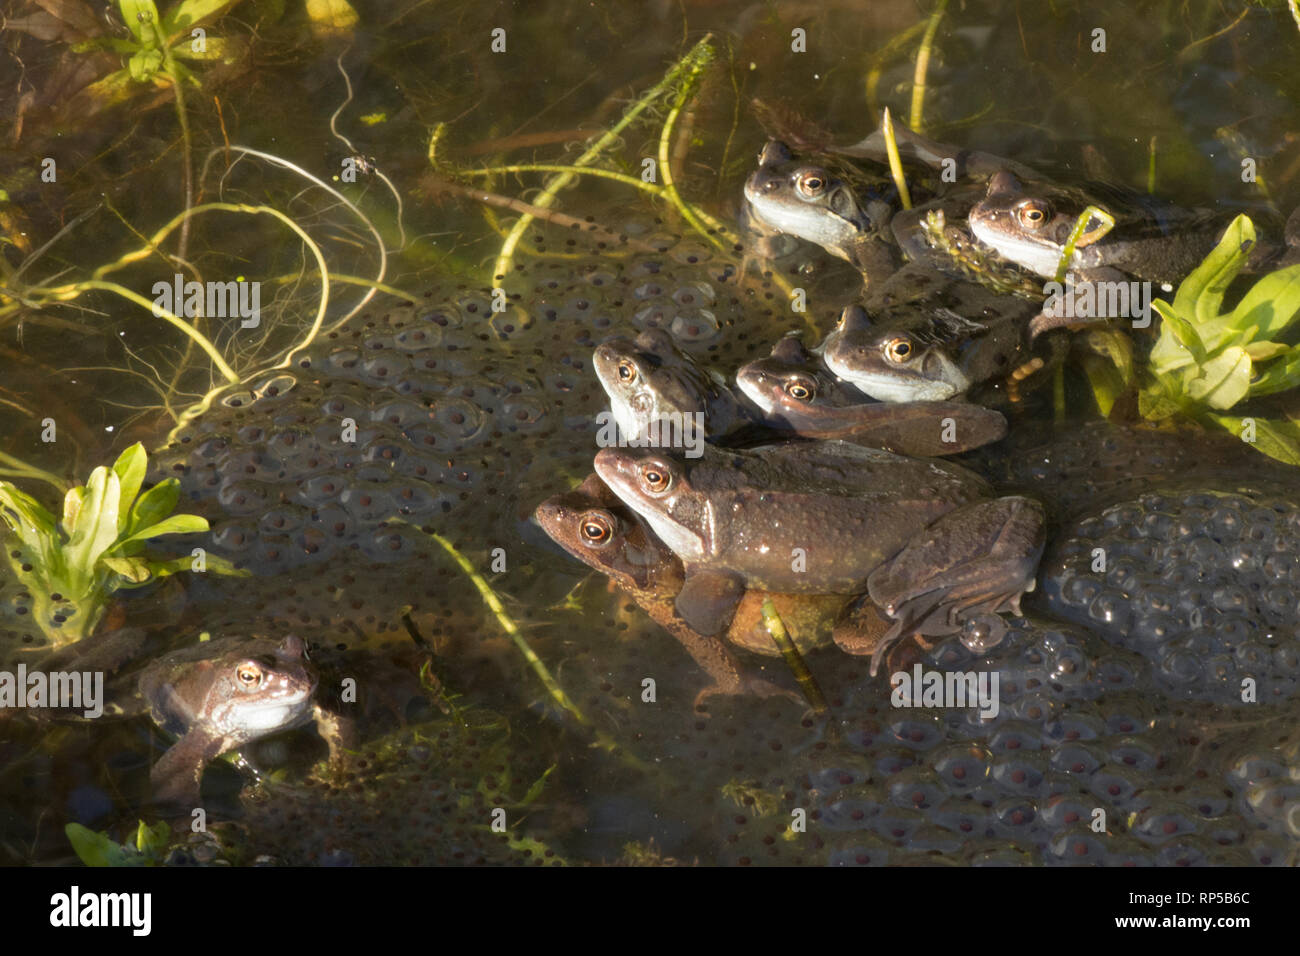 Common Frog, Rana temporaria, one pair, male and female among many males waiting on frog spawn for females to arrive for spawning, Stock Photo